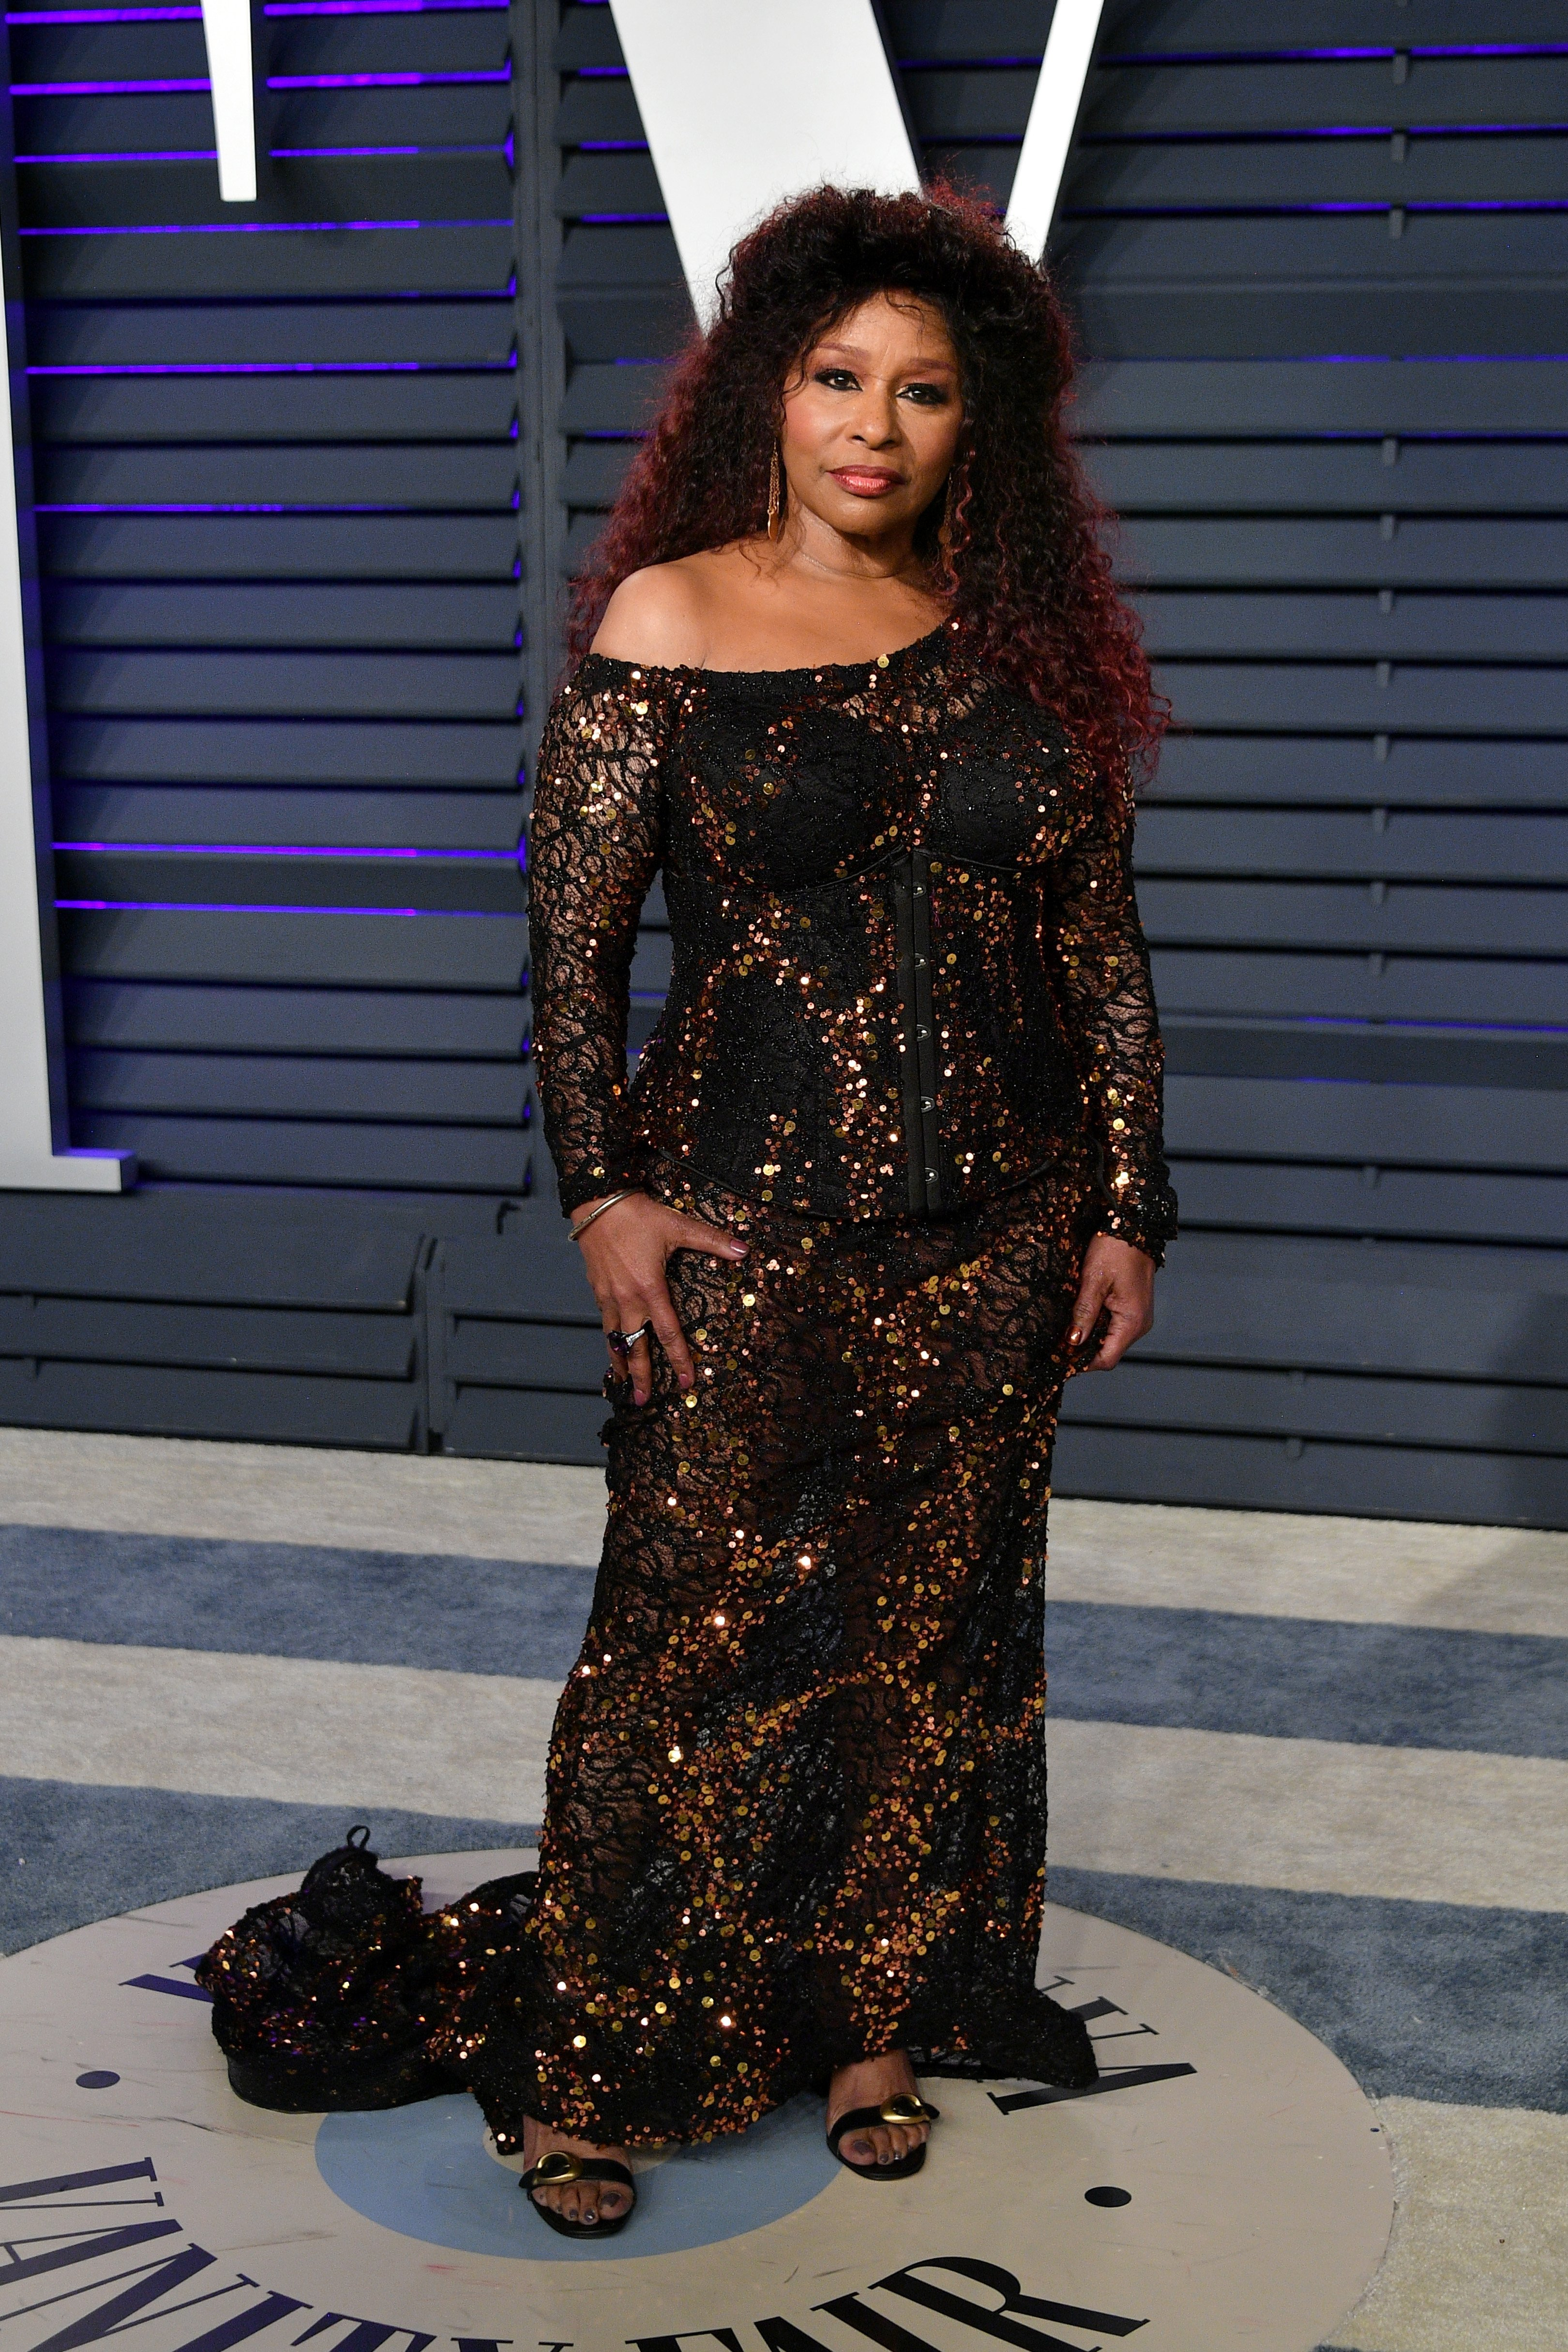 Chaka Khan attends the 2019 Vanity Fair Oscar Party at Wallis Annenberg Center for the Performing Arts on February 24, 2019  | Photo: GettyImages